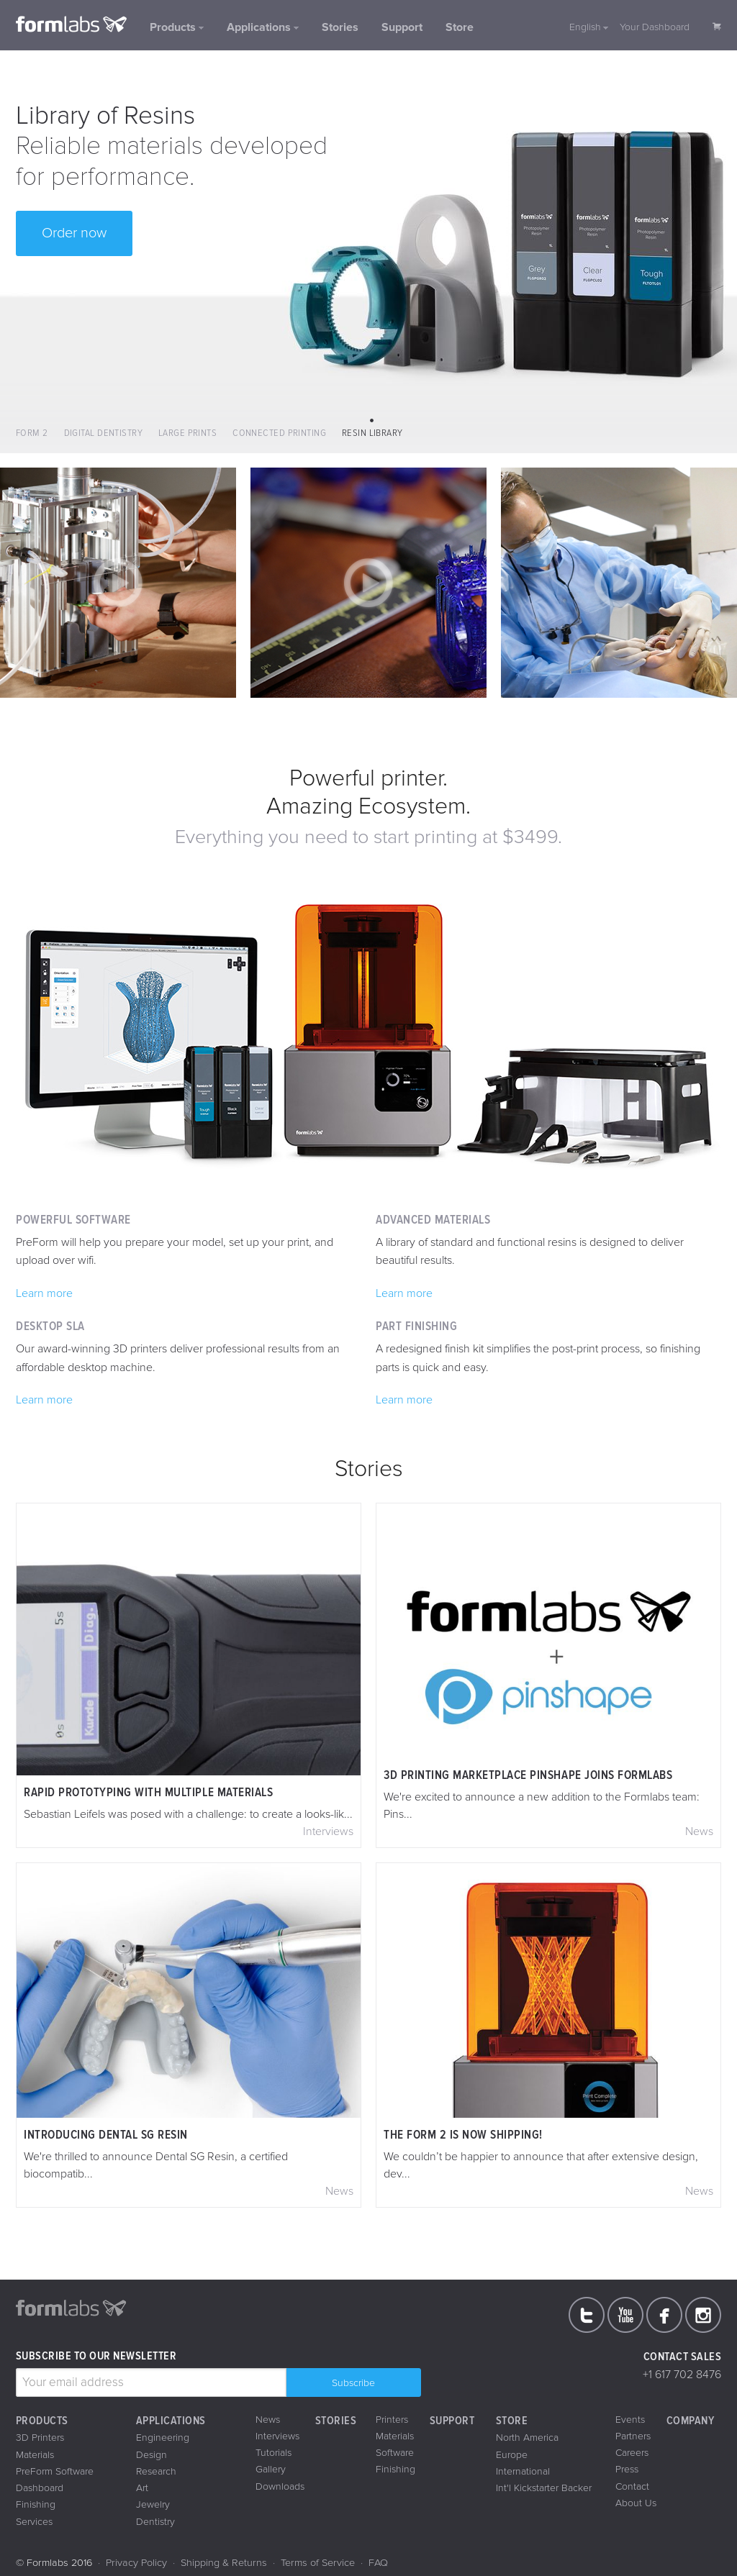 Formlabs Competitors, Revenue and Employees - Owler Company